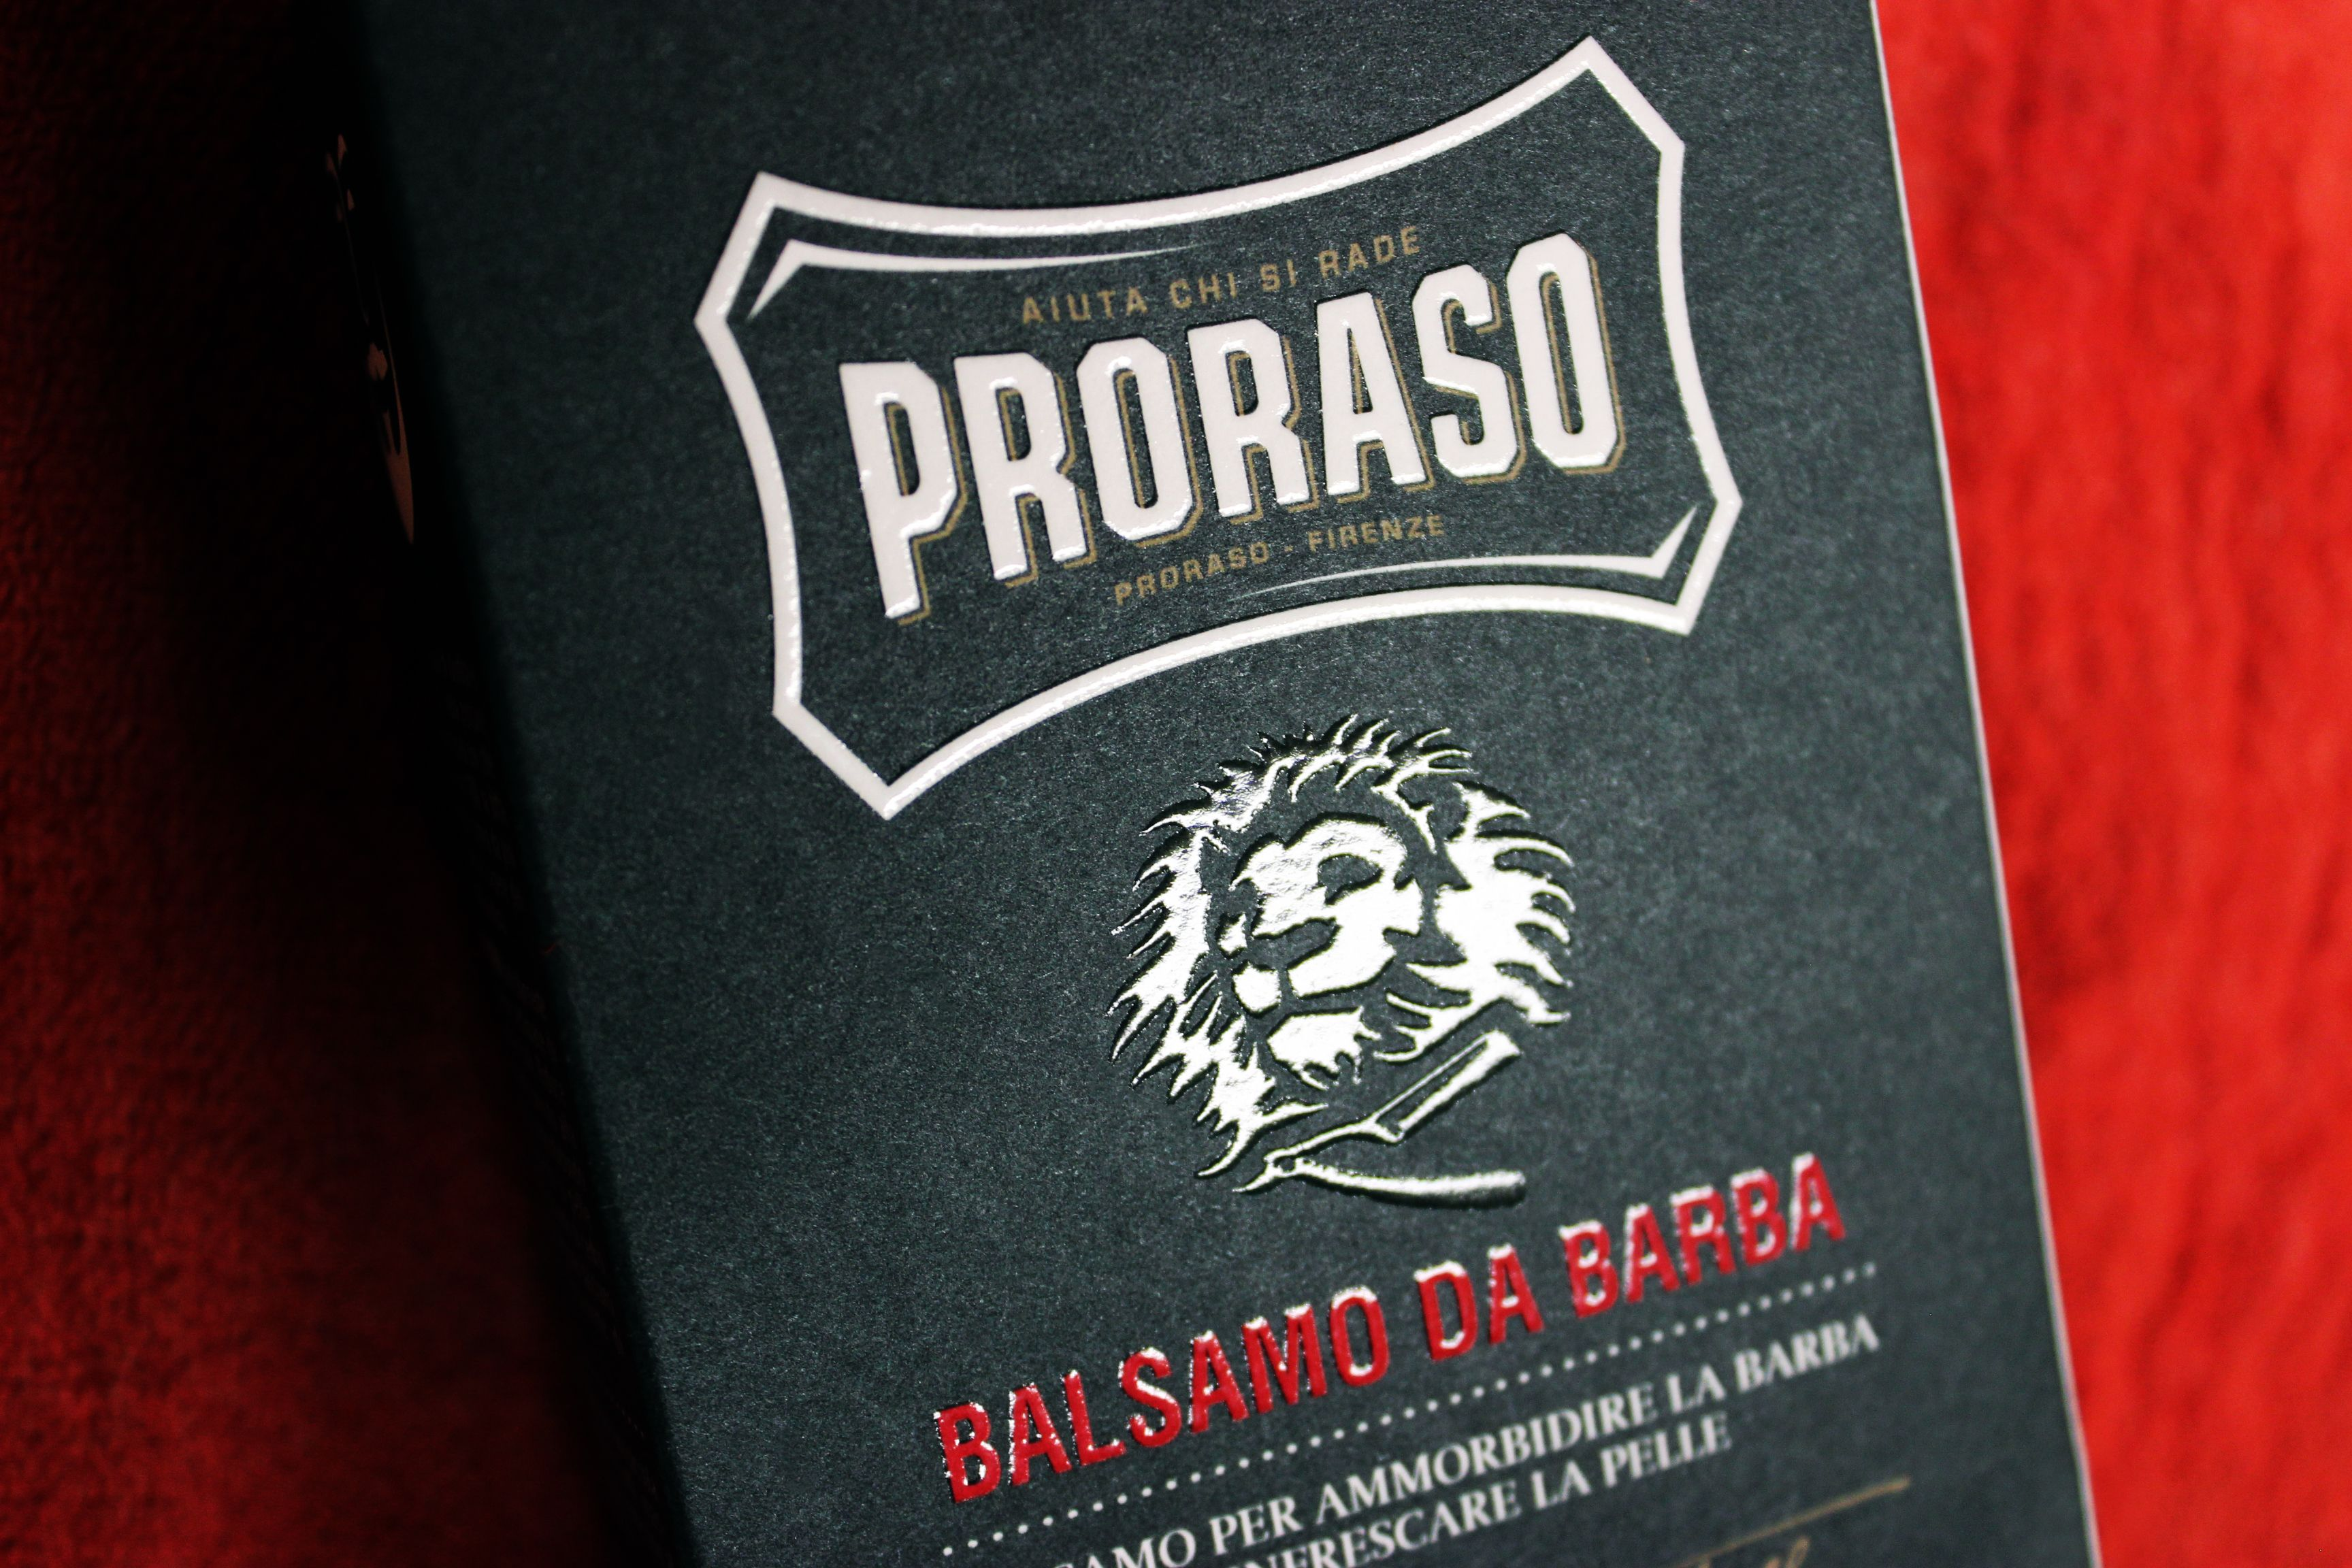 Soothes And Softens Beard Hair As It Grows With Proraso Beardbalm Frescare Scented A